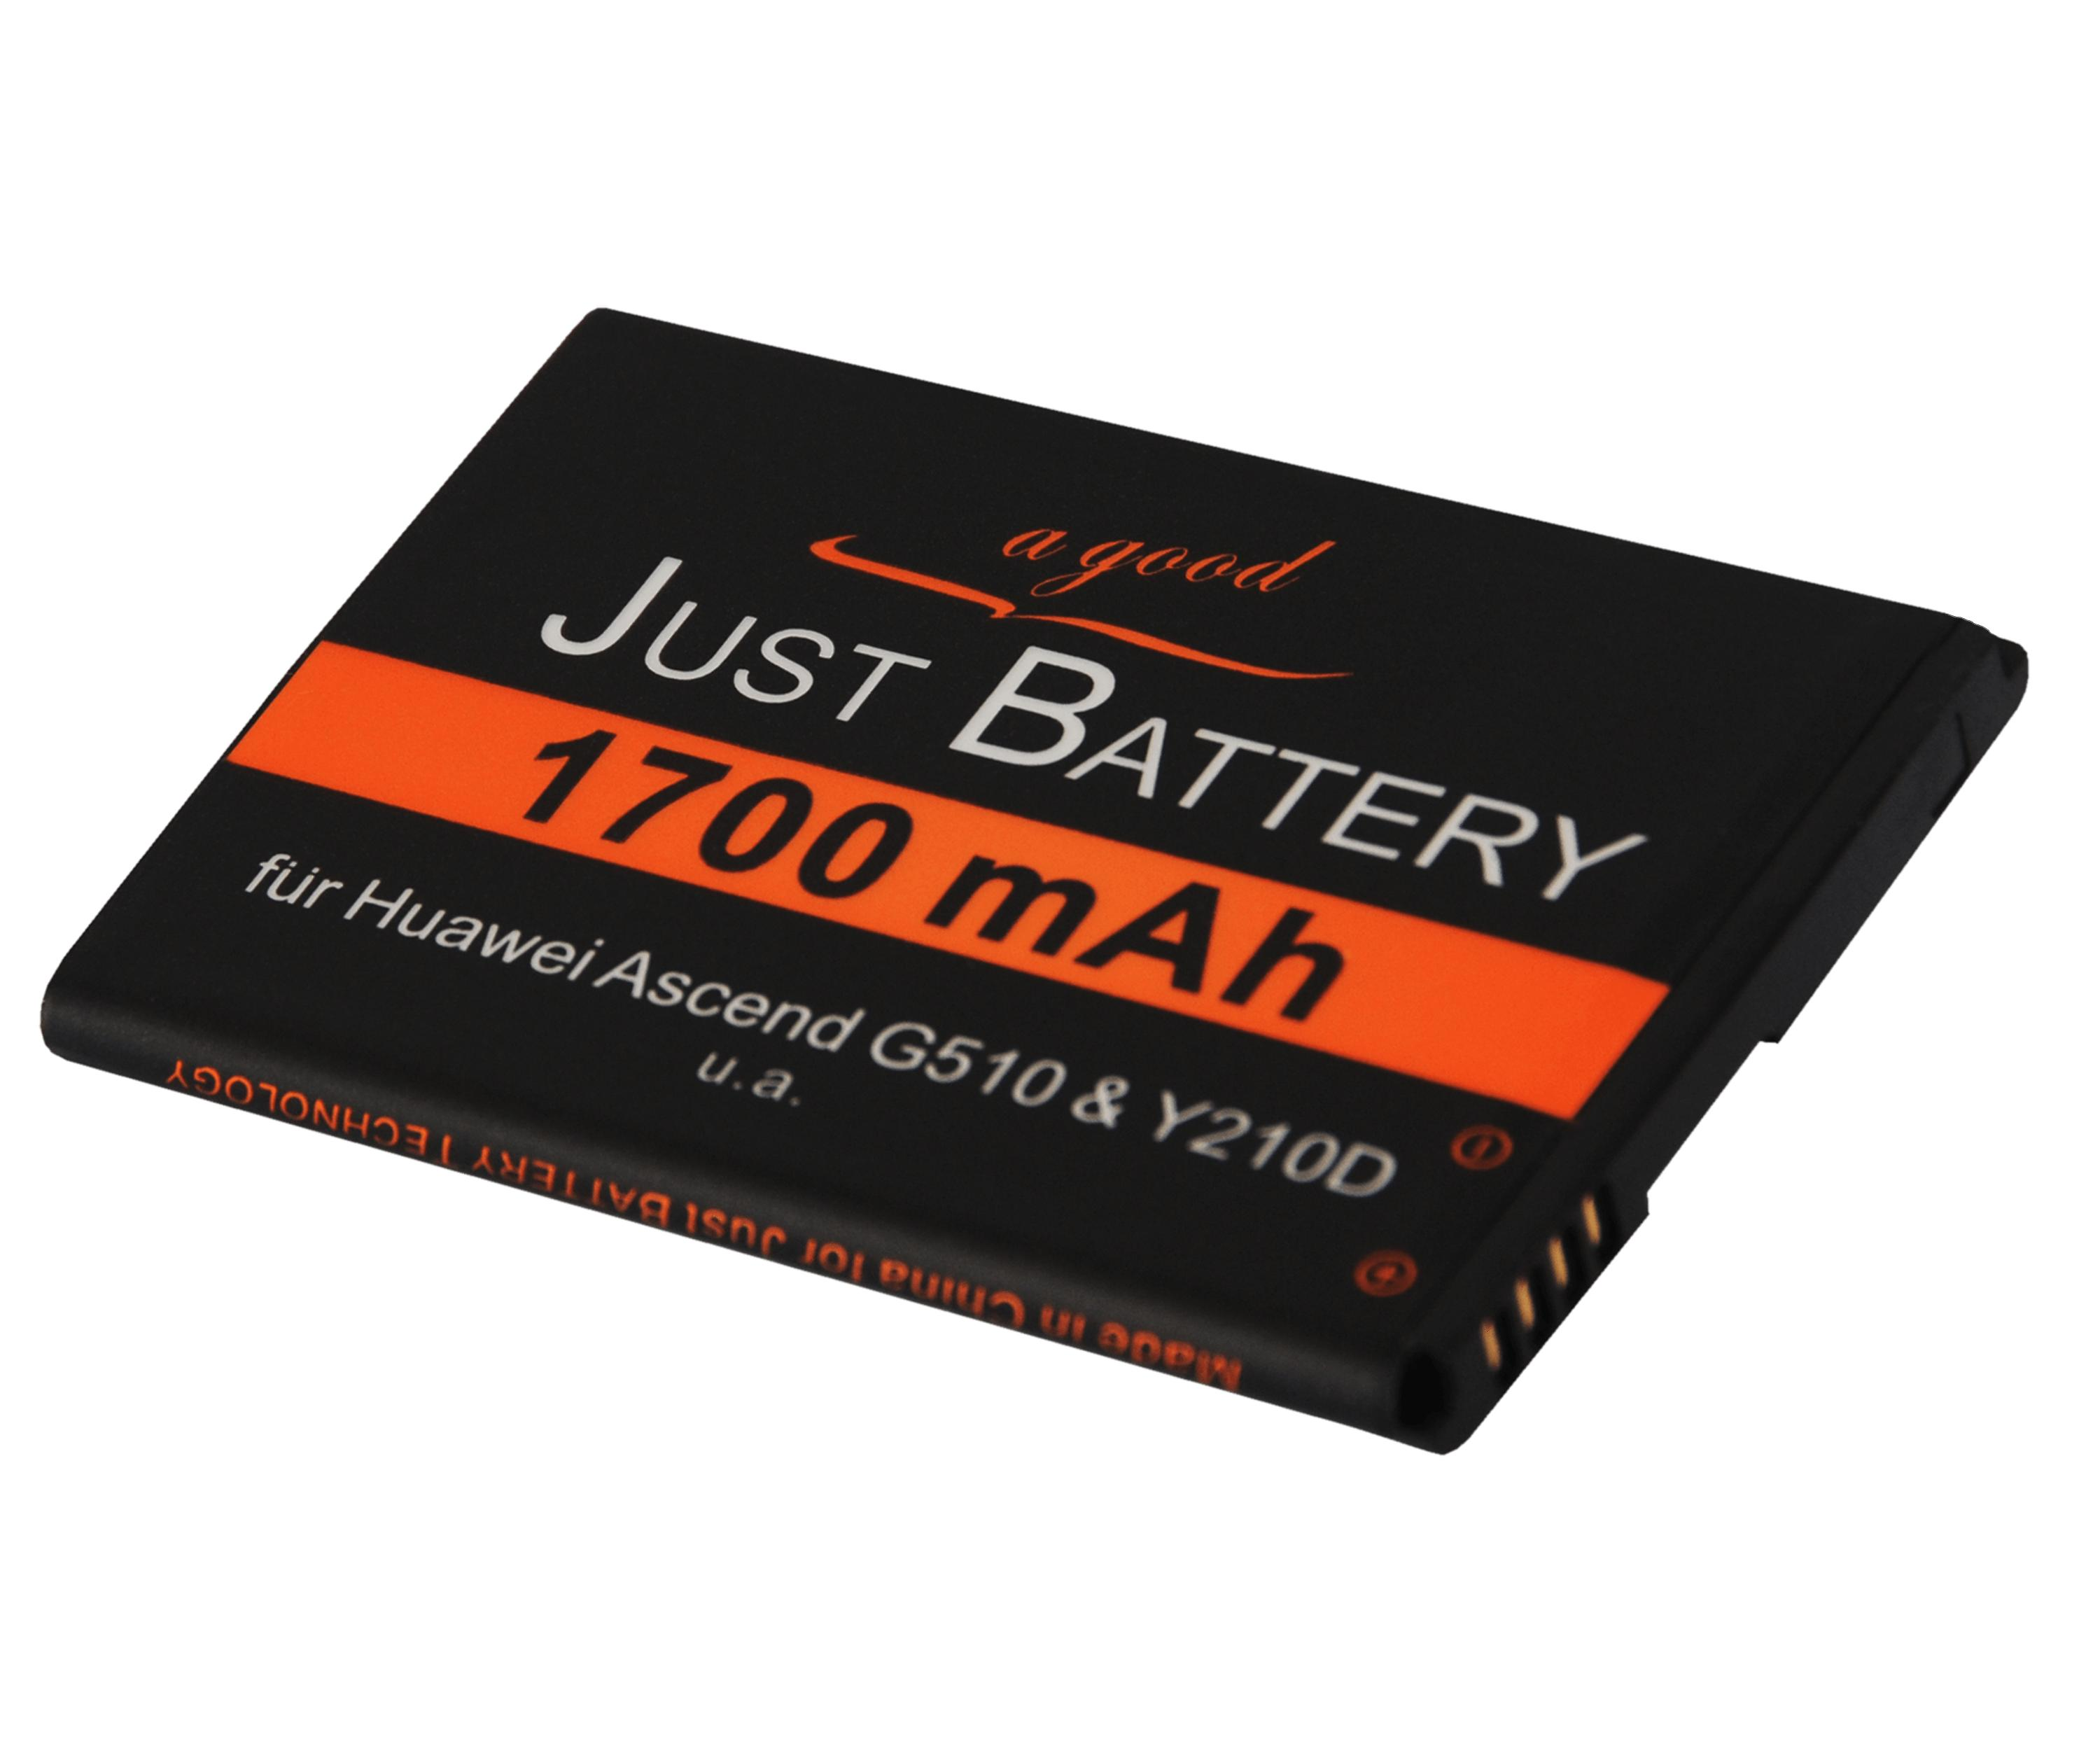 Battery for Huawei Ascend G510/520 and others